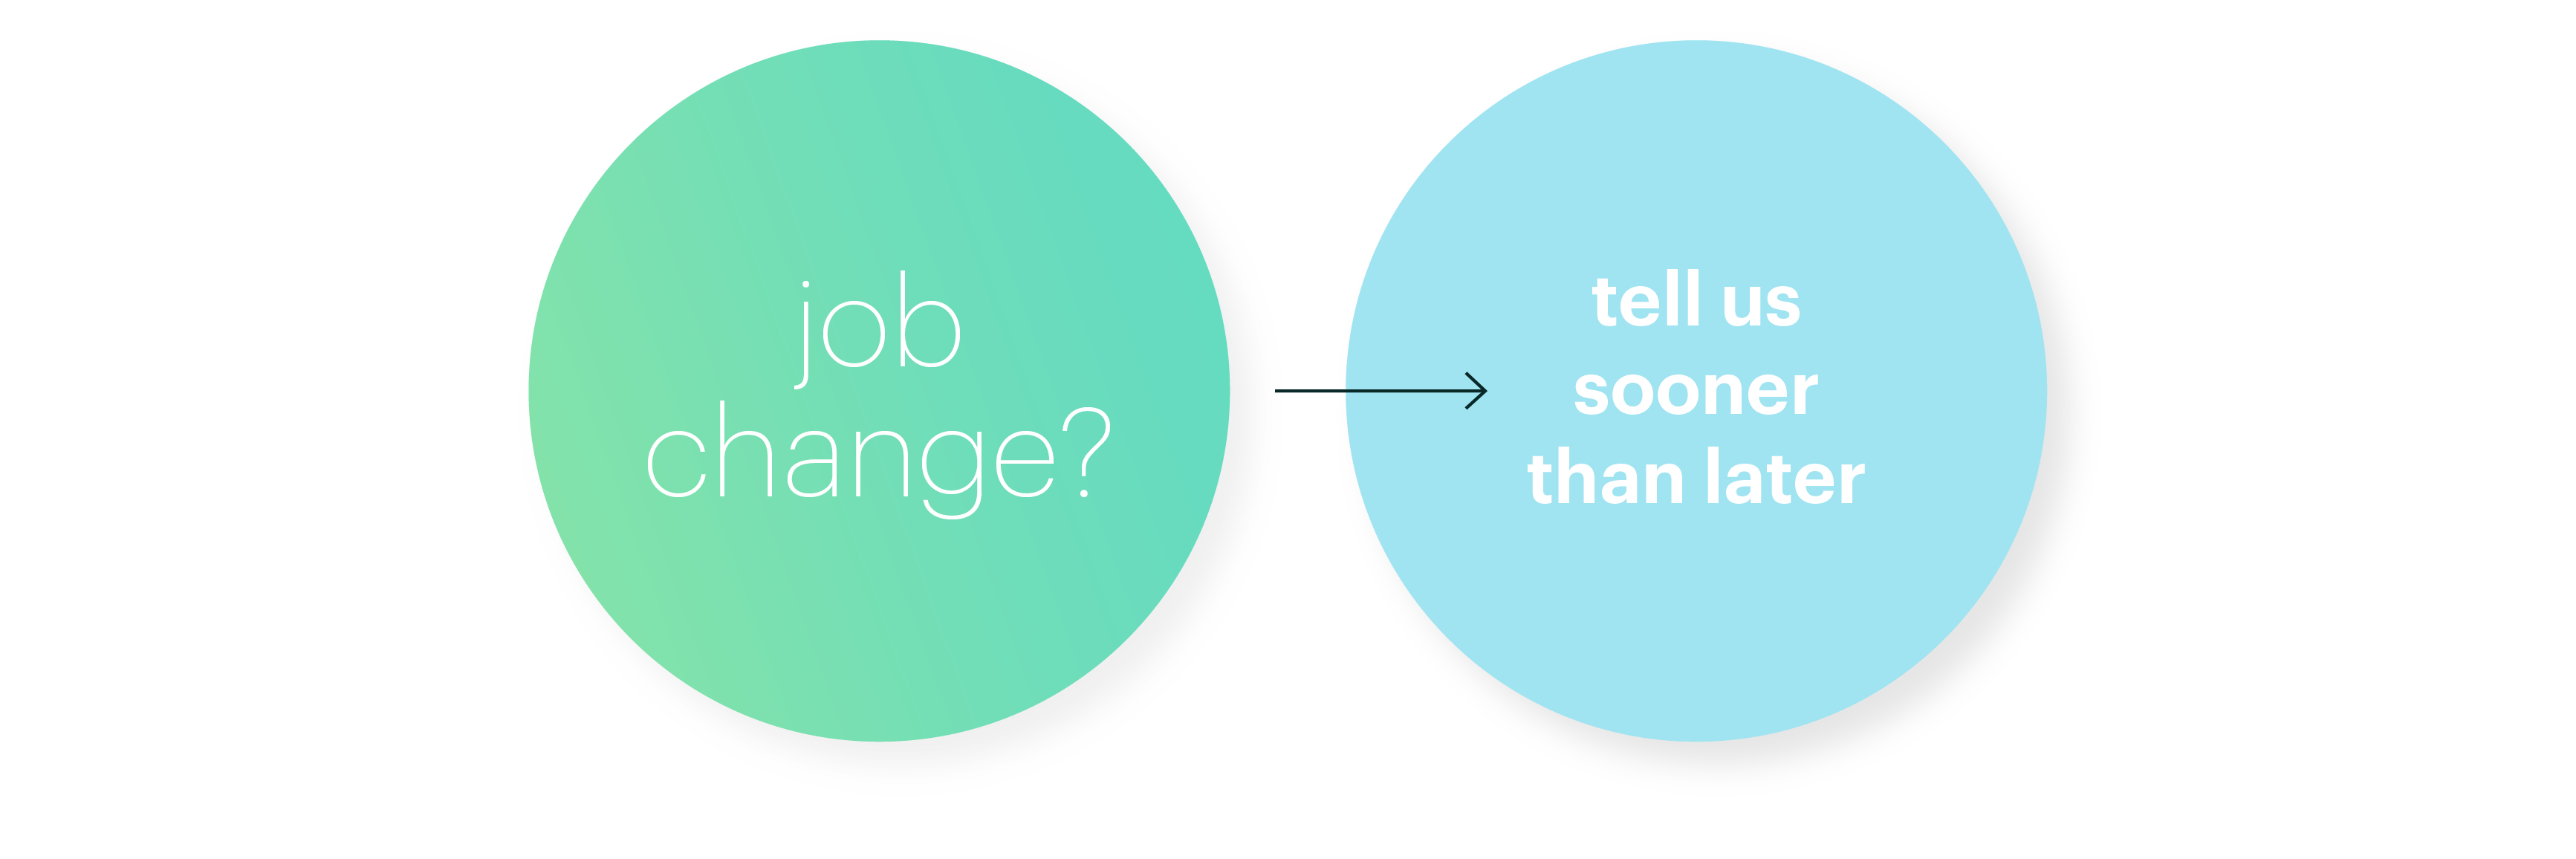 Diagram: Two Side by Side Circles. Left Circle: Job Change and Blue Circle: Tell Us Sooner or Later